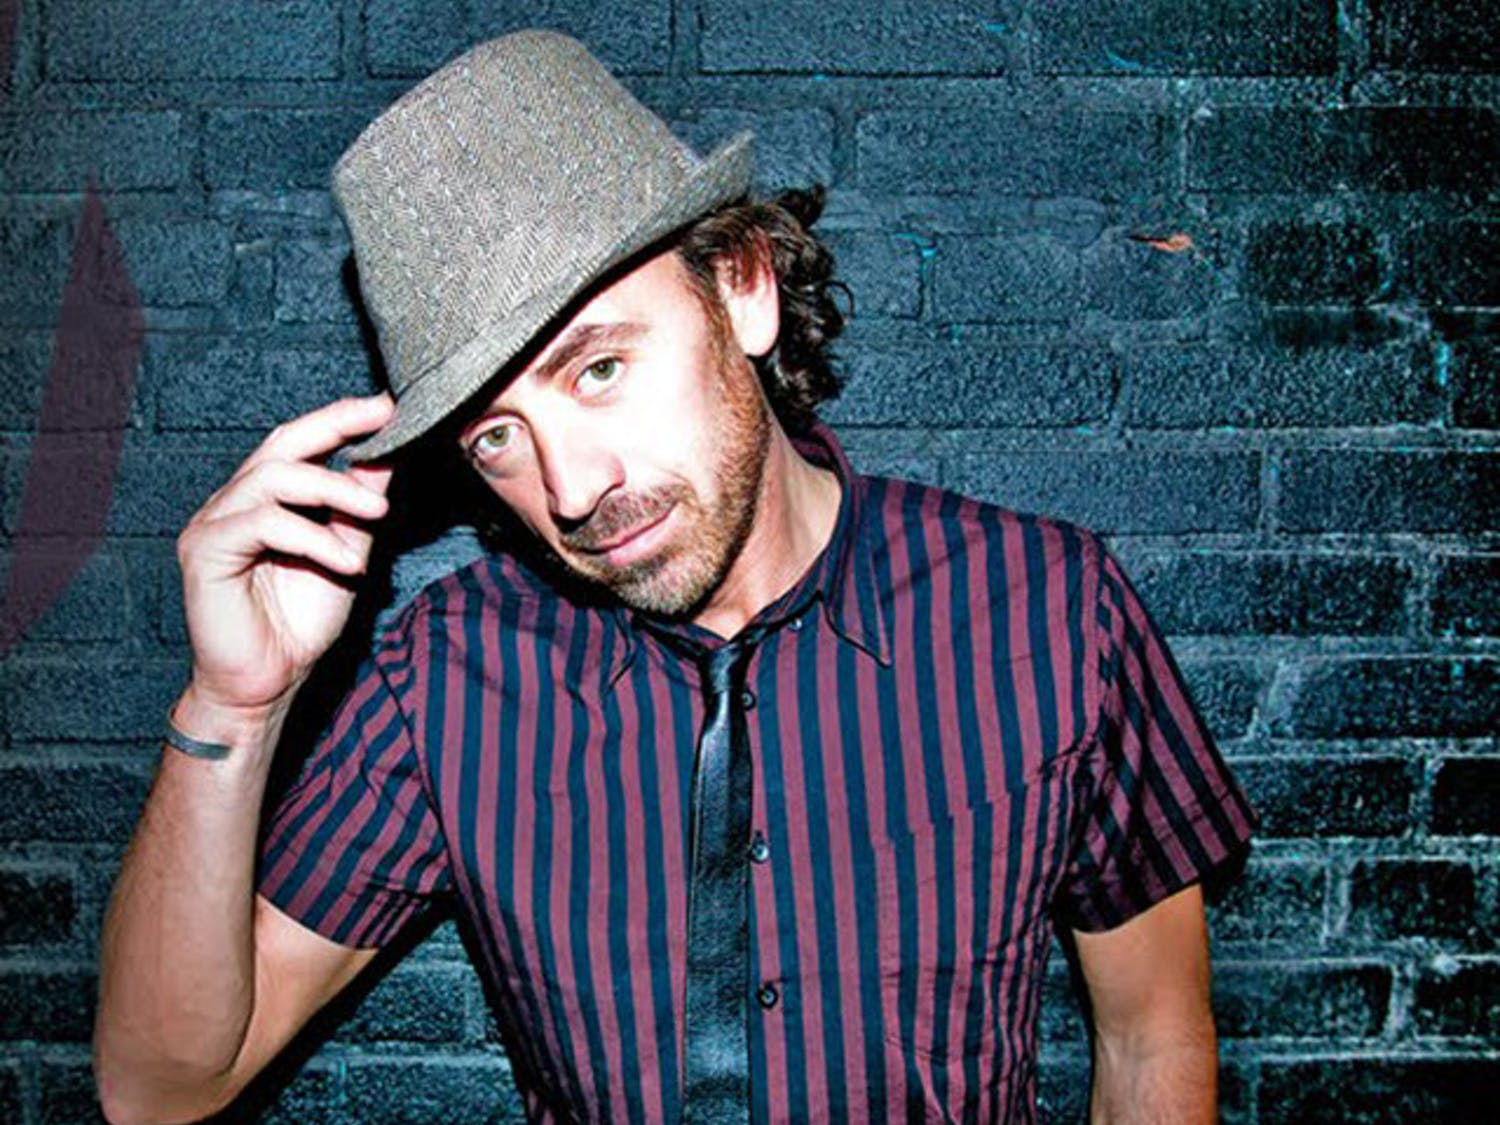 Benny Benassi will perform for an 18-and-up event at Florida Theatre of Gainesville on Friday. Limited tickets will be available at the door.